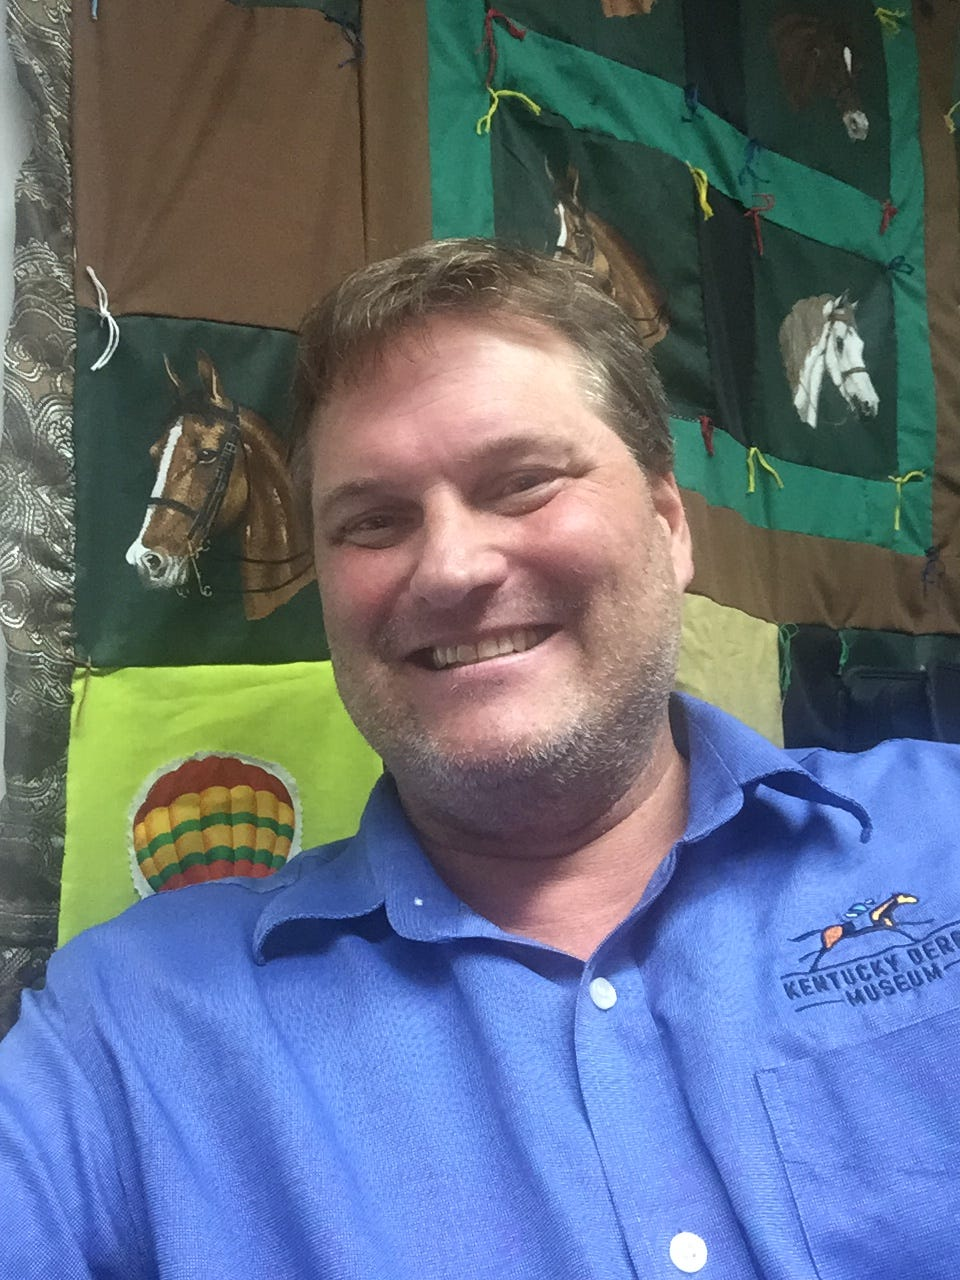 Ronnie Dreistadt, the manager of education services at the Kentucky Derby Museum, is the resident expert on all things spooky and haunted at Churchill Downs.